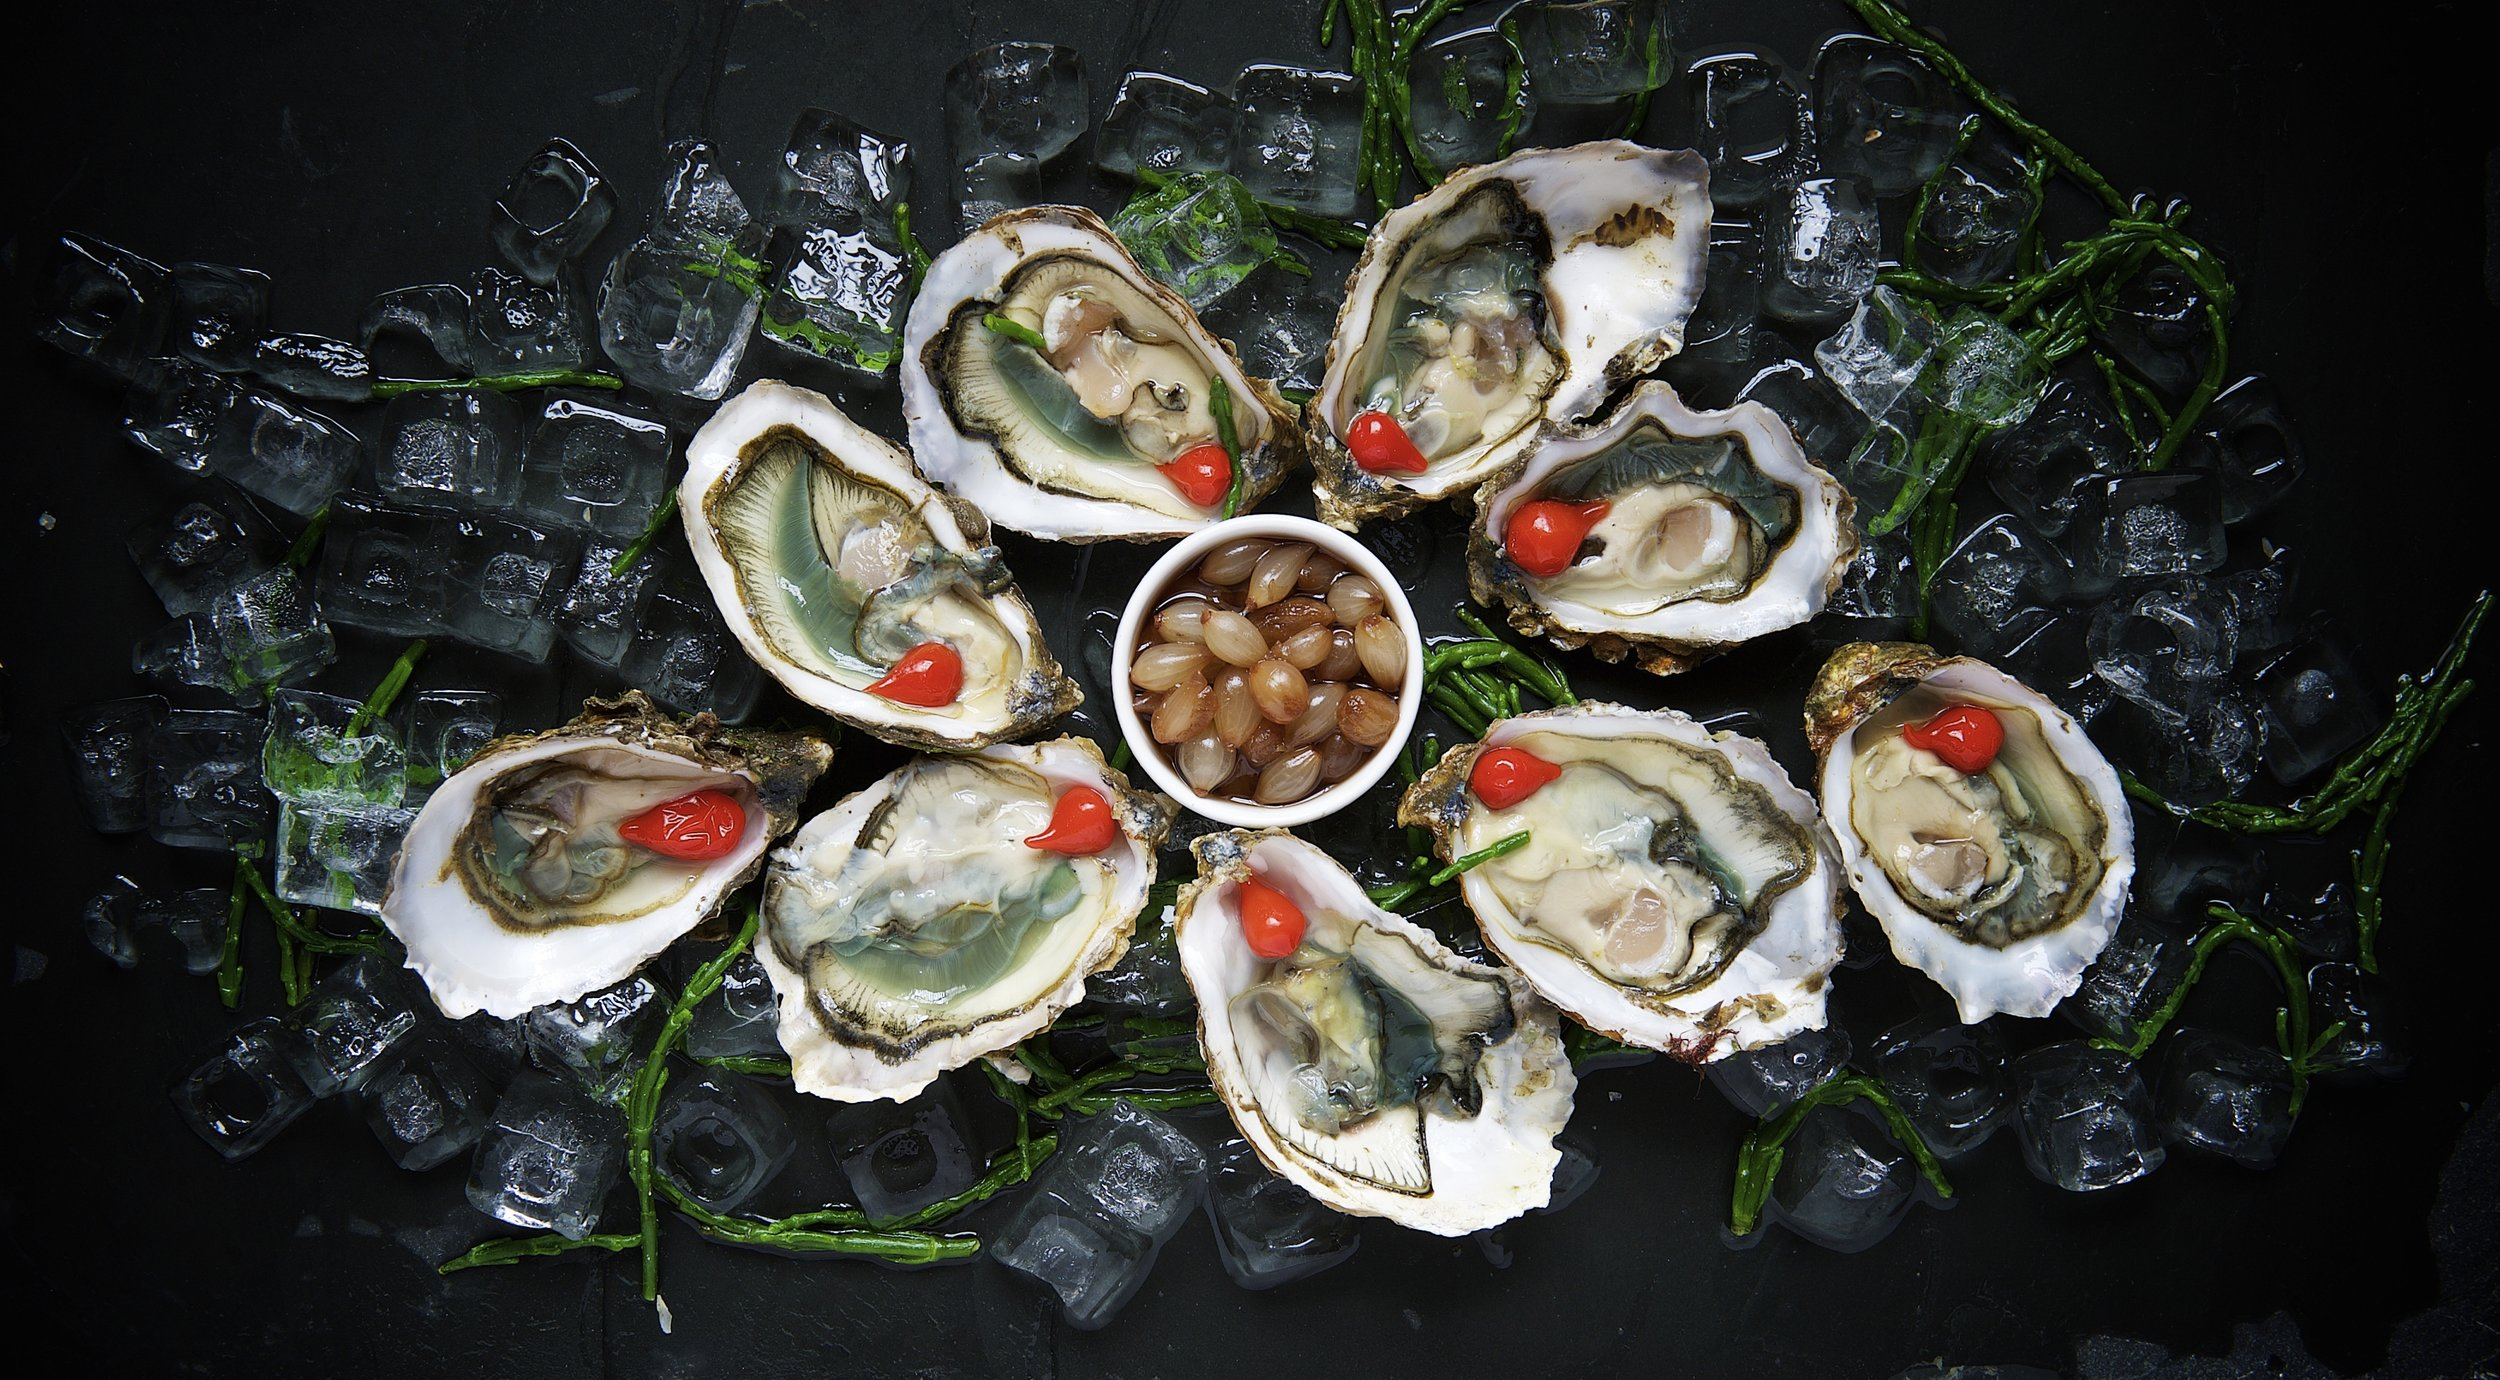 Oysters   Healing Nutrient: Omega-3  Joint Health    How To Shuck Oysters